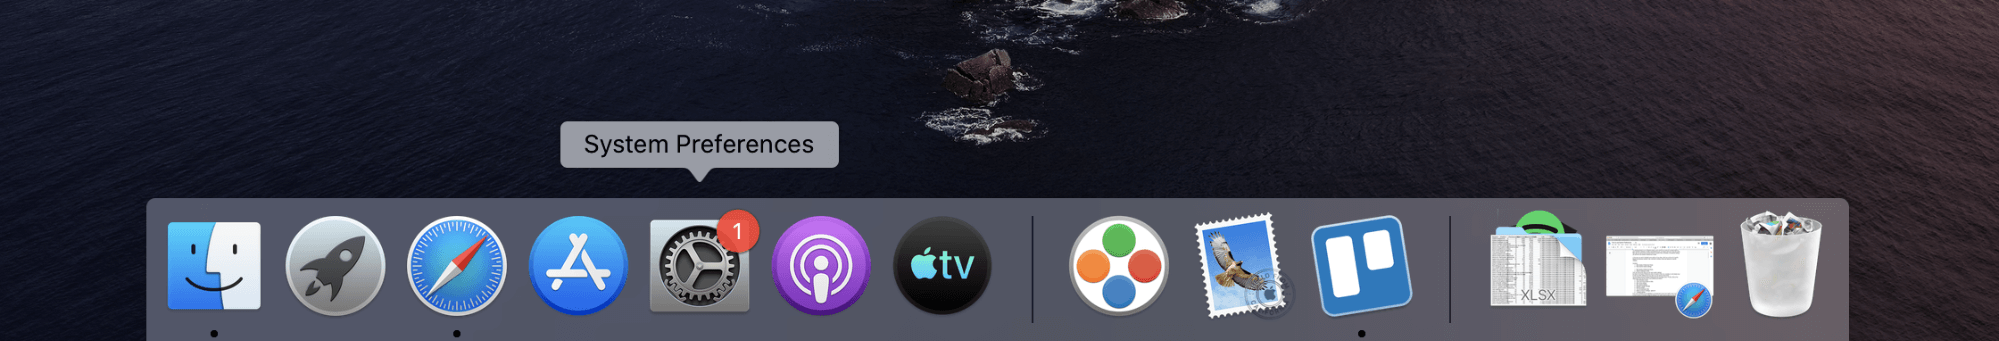 System Preferences command is selected from Dock panel